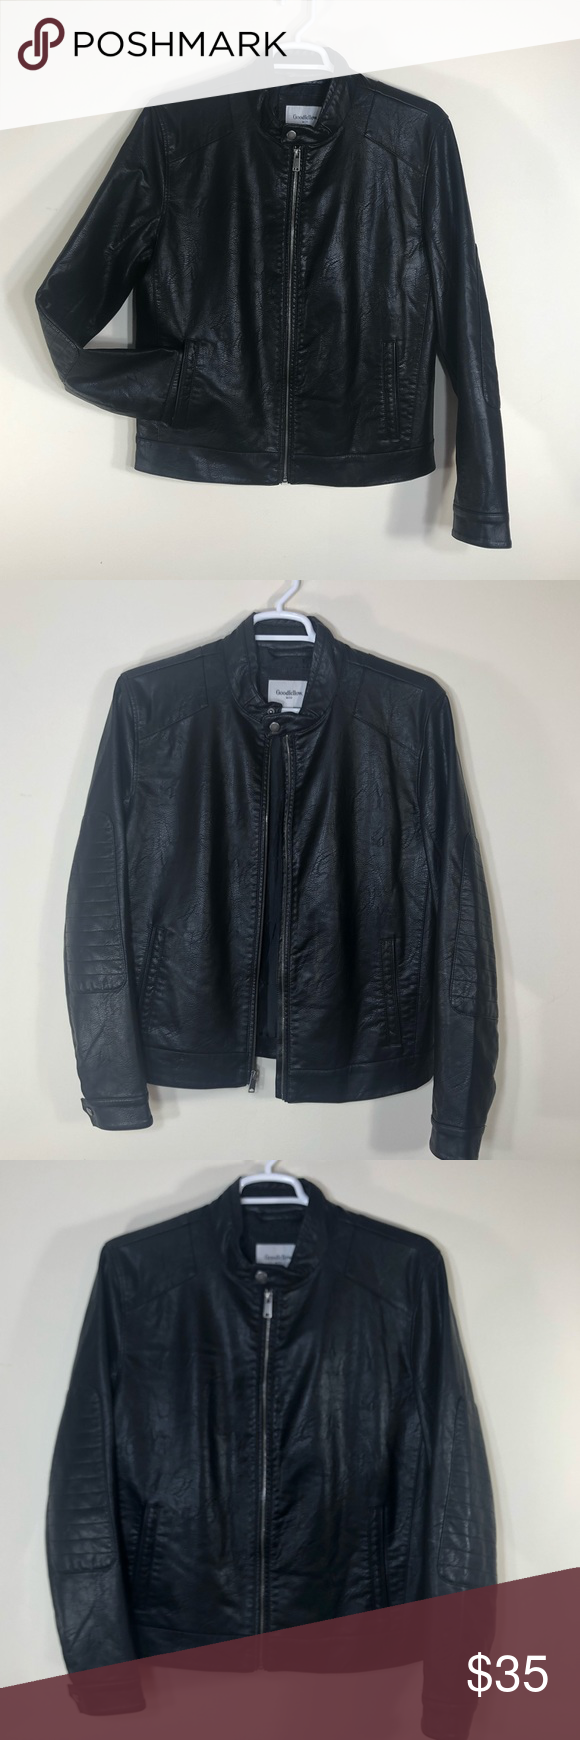 Goodfellow Black Leather Jacket Faux Leather Black Faux Leather Jacket Leather Jacket Leather Jacket Black [ png ]